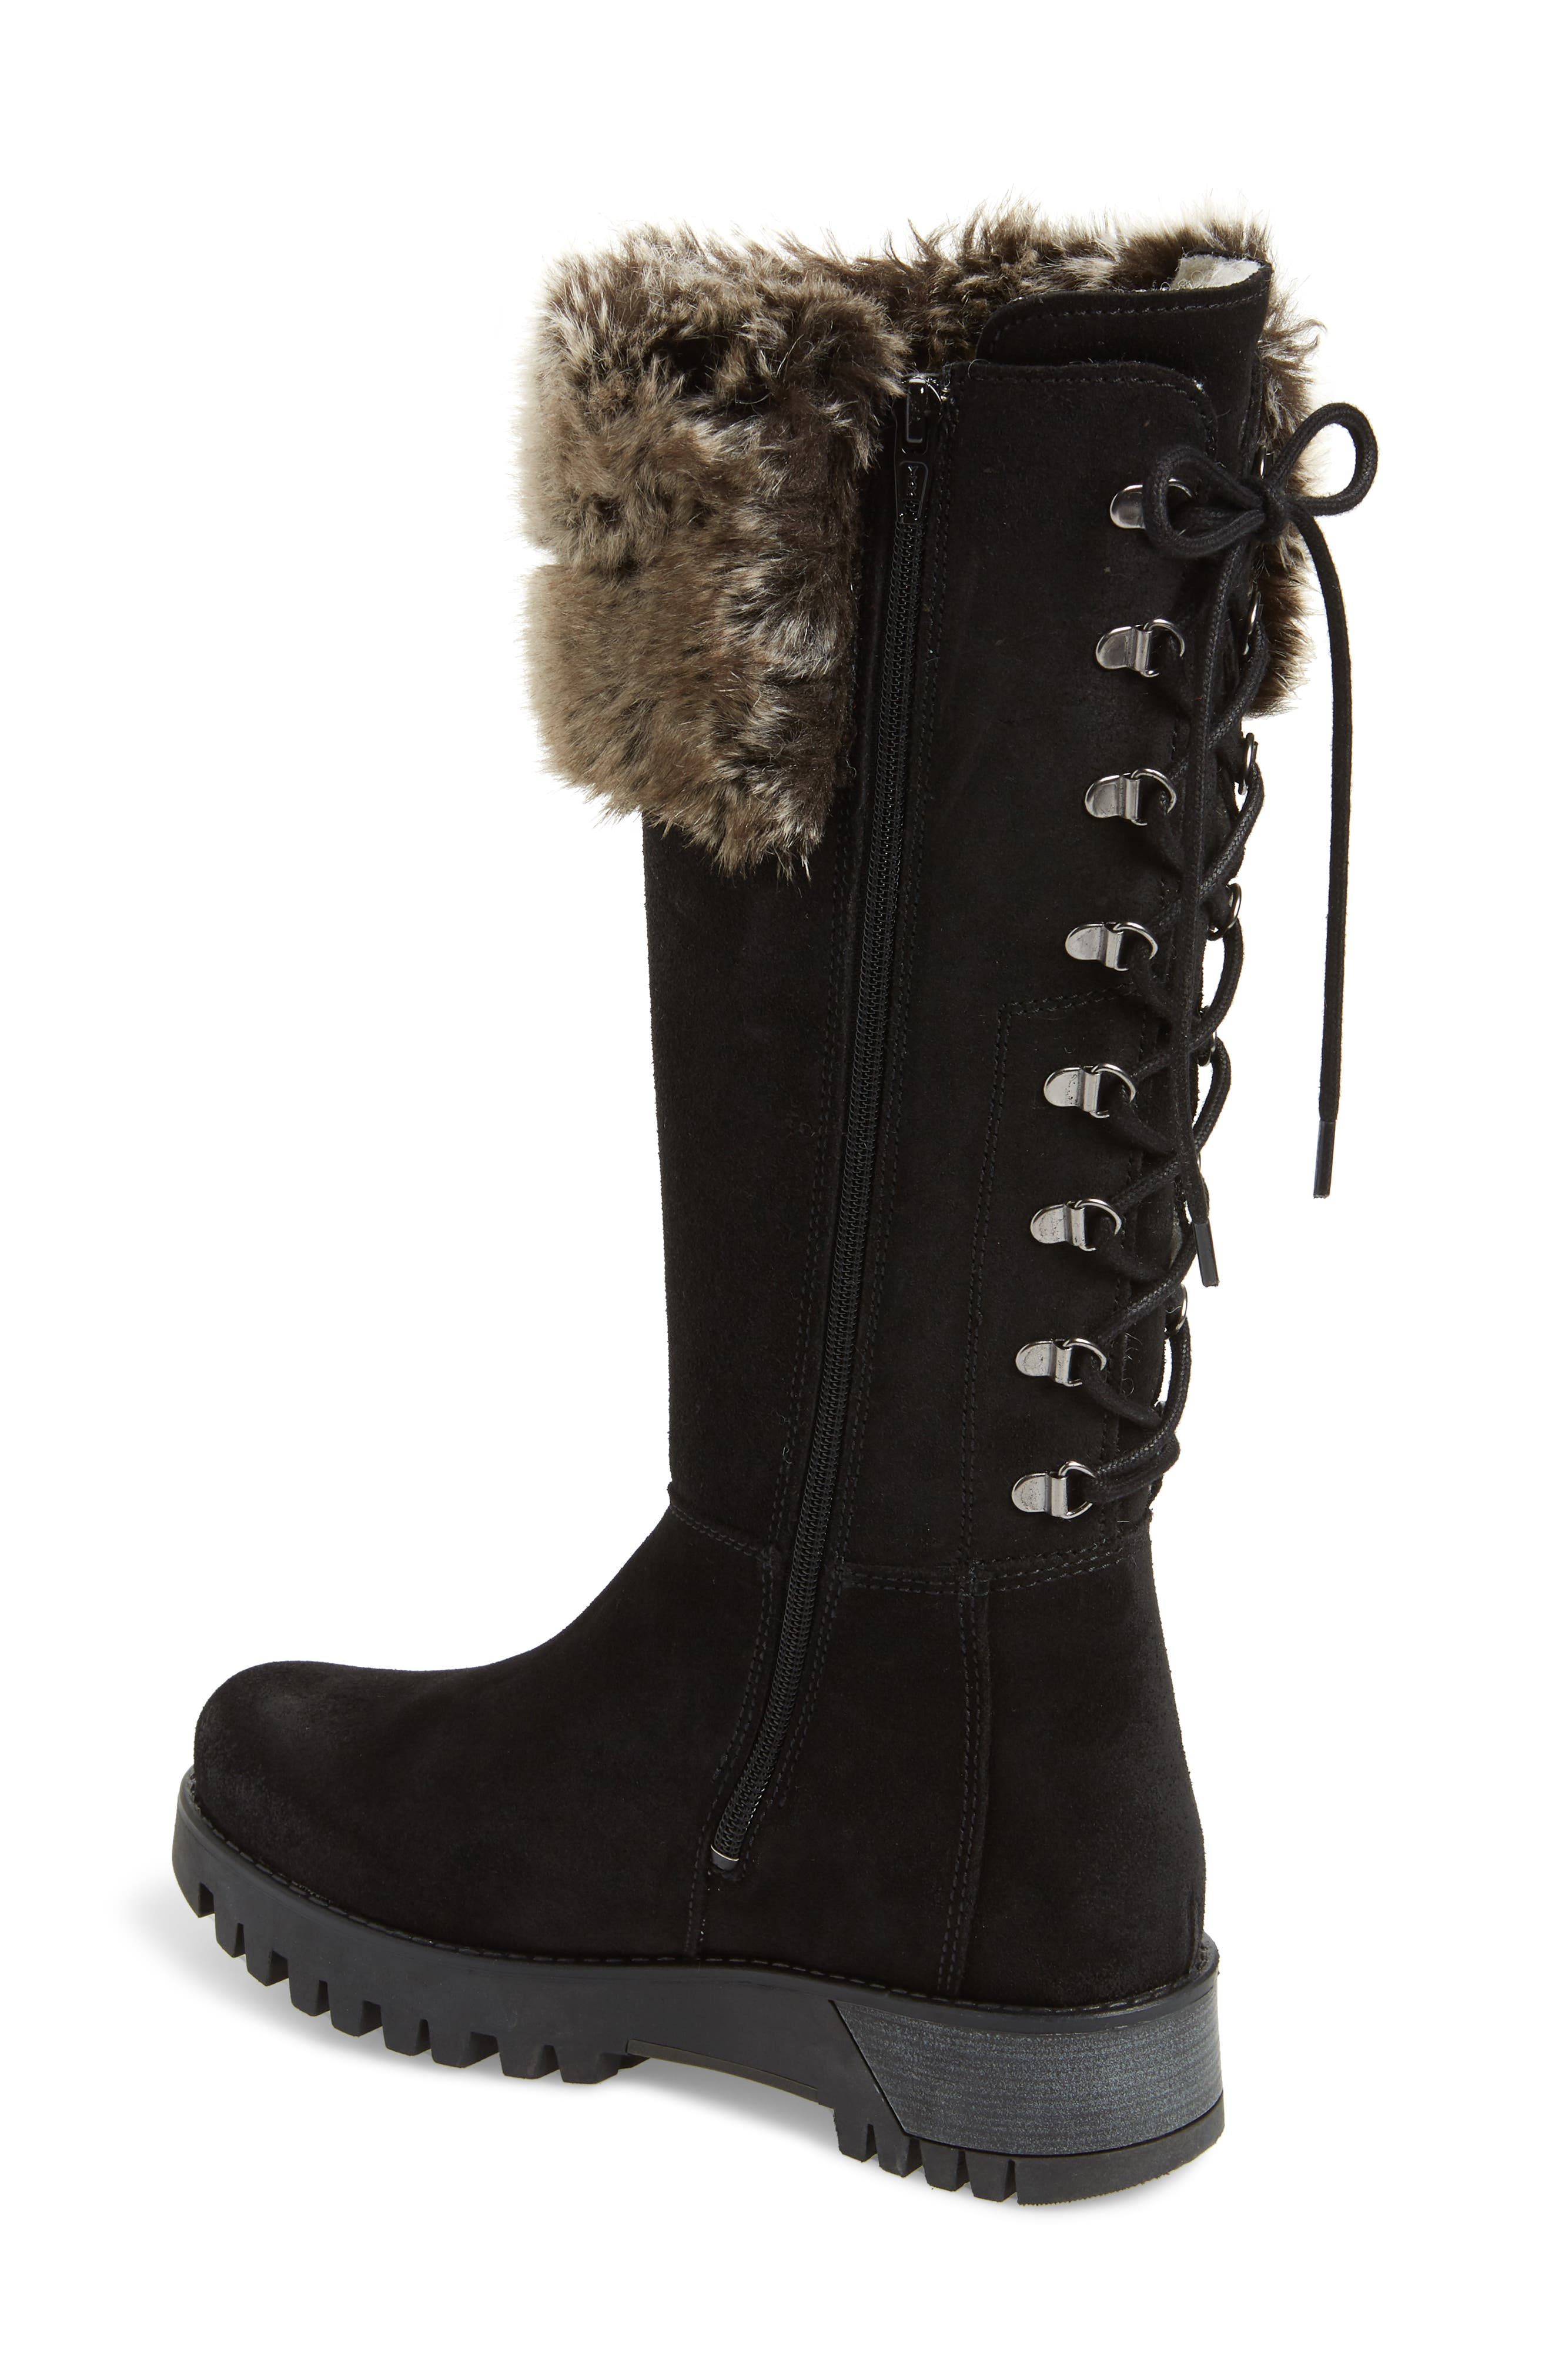 BOS. & CO., Graham Waterproof Winter Boot with Faux Fur Cuff, Alternate thumbnail 2, color, BLACK SUEDE